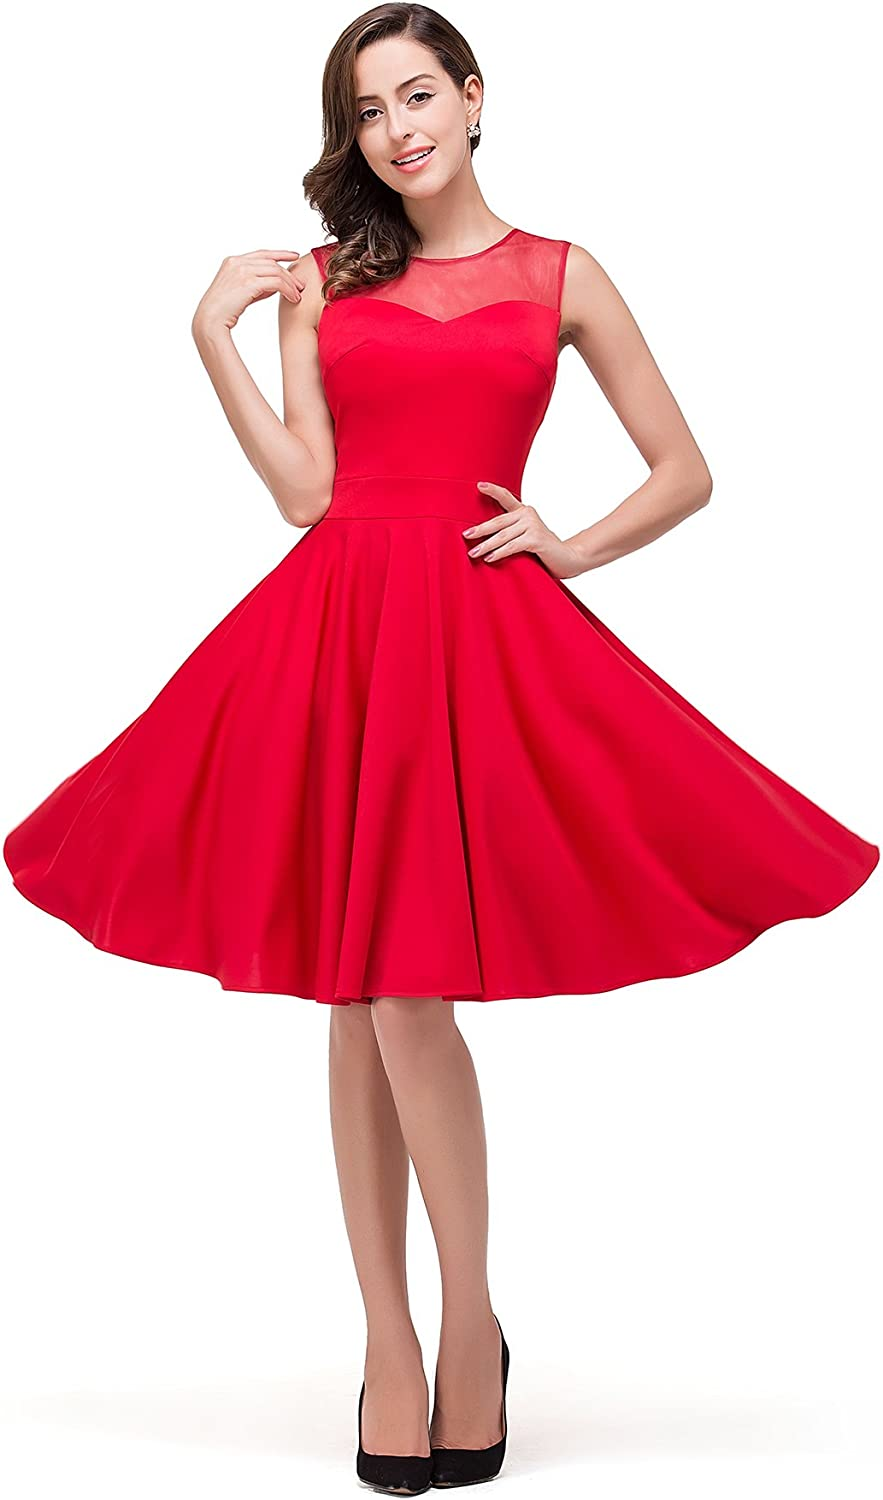 MisShow Womens Sleeveless Pleated Little Cocktail Party Swing Dress